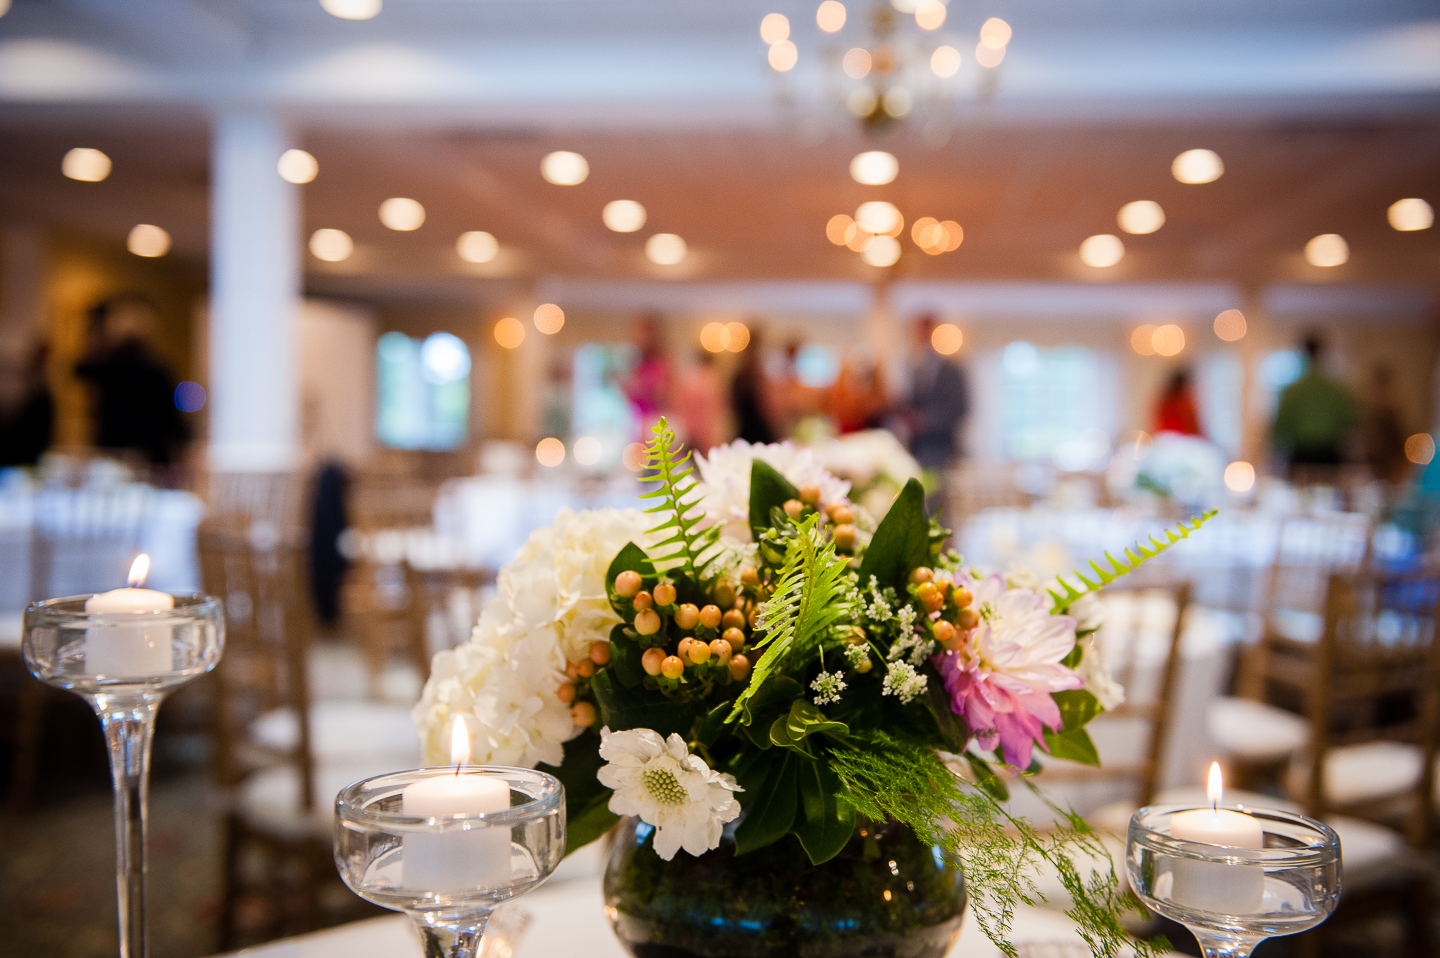 pretty twinkly lights behind one of the floral centerpieces